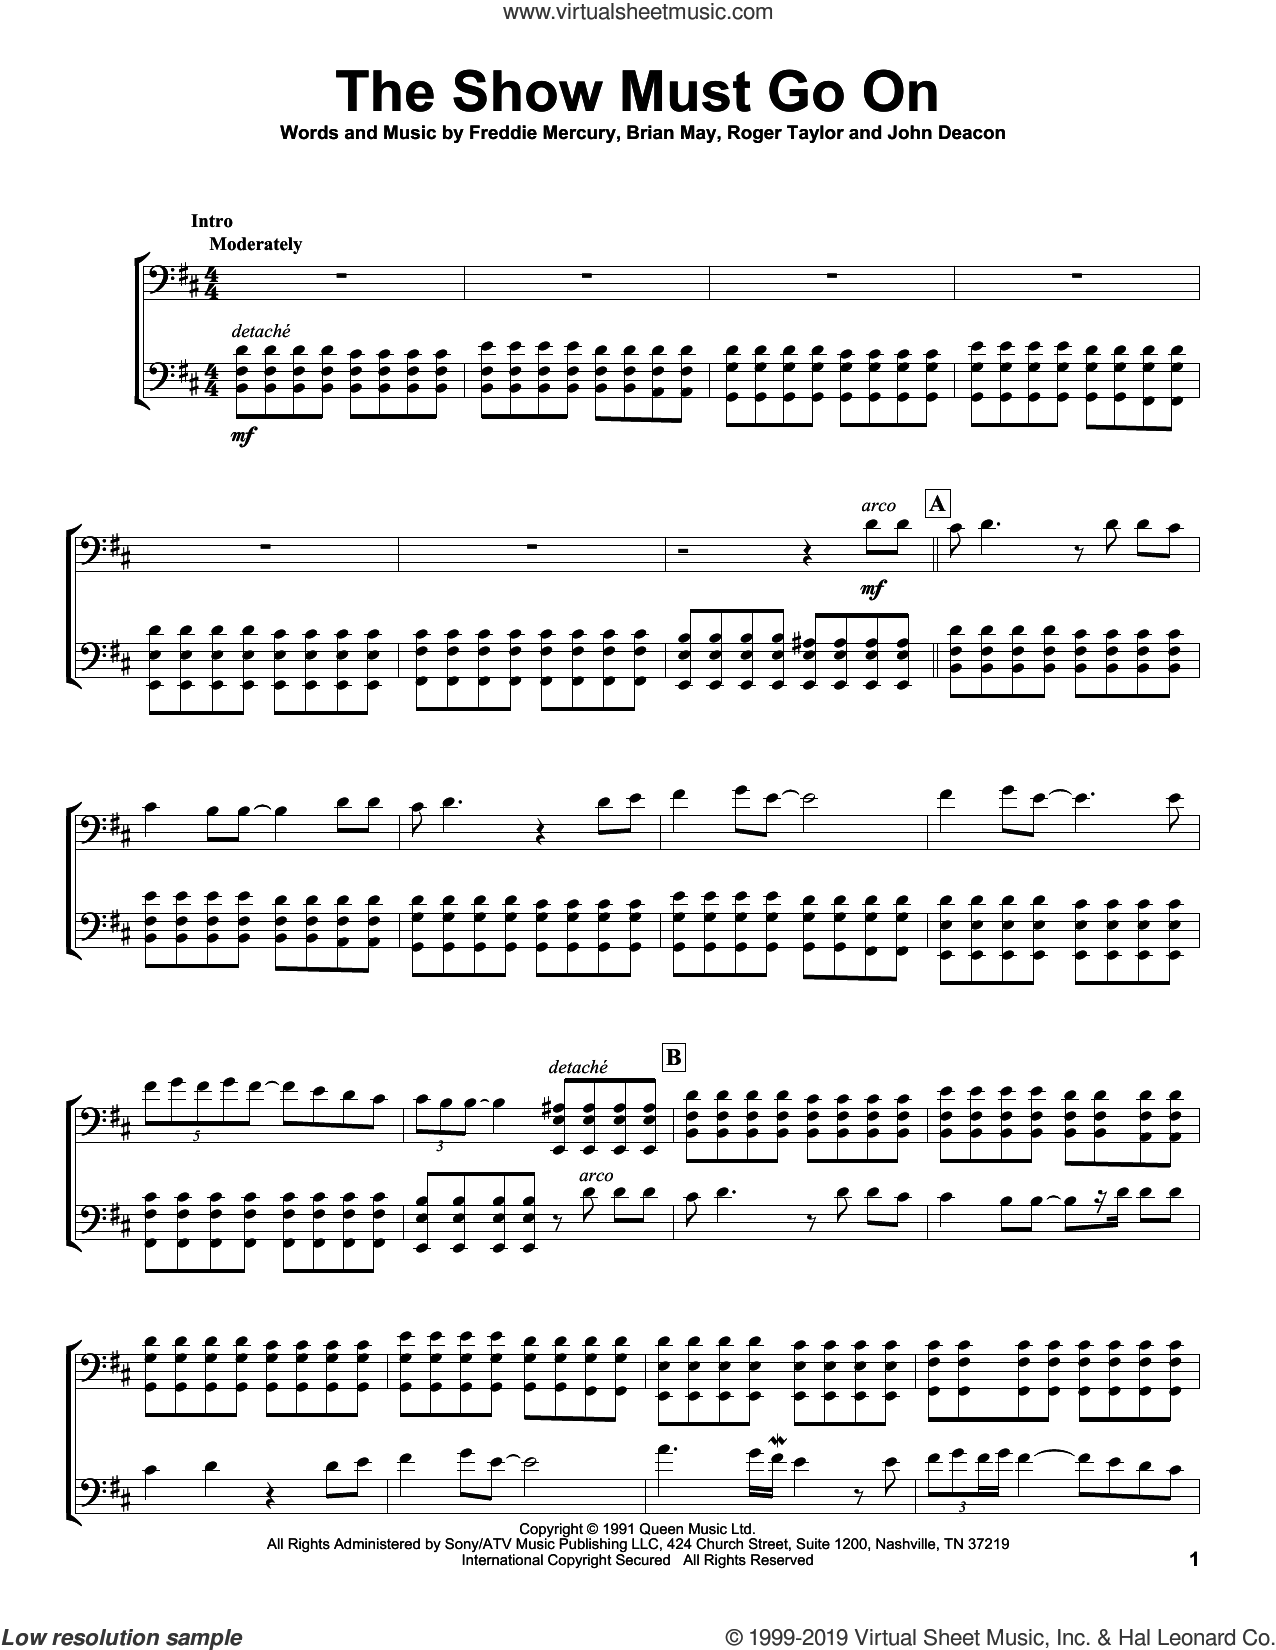 The Show Must Go On sheet music for two cellos (duet, duets) by 2Cellos, Queen, Brian May, Freddie Mercury, John Deacon and Roger Taylor, intermediate skill level